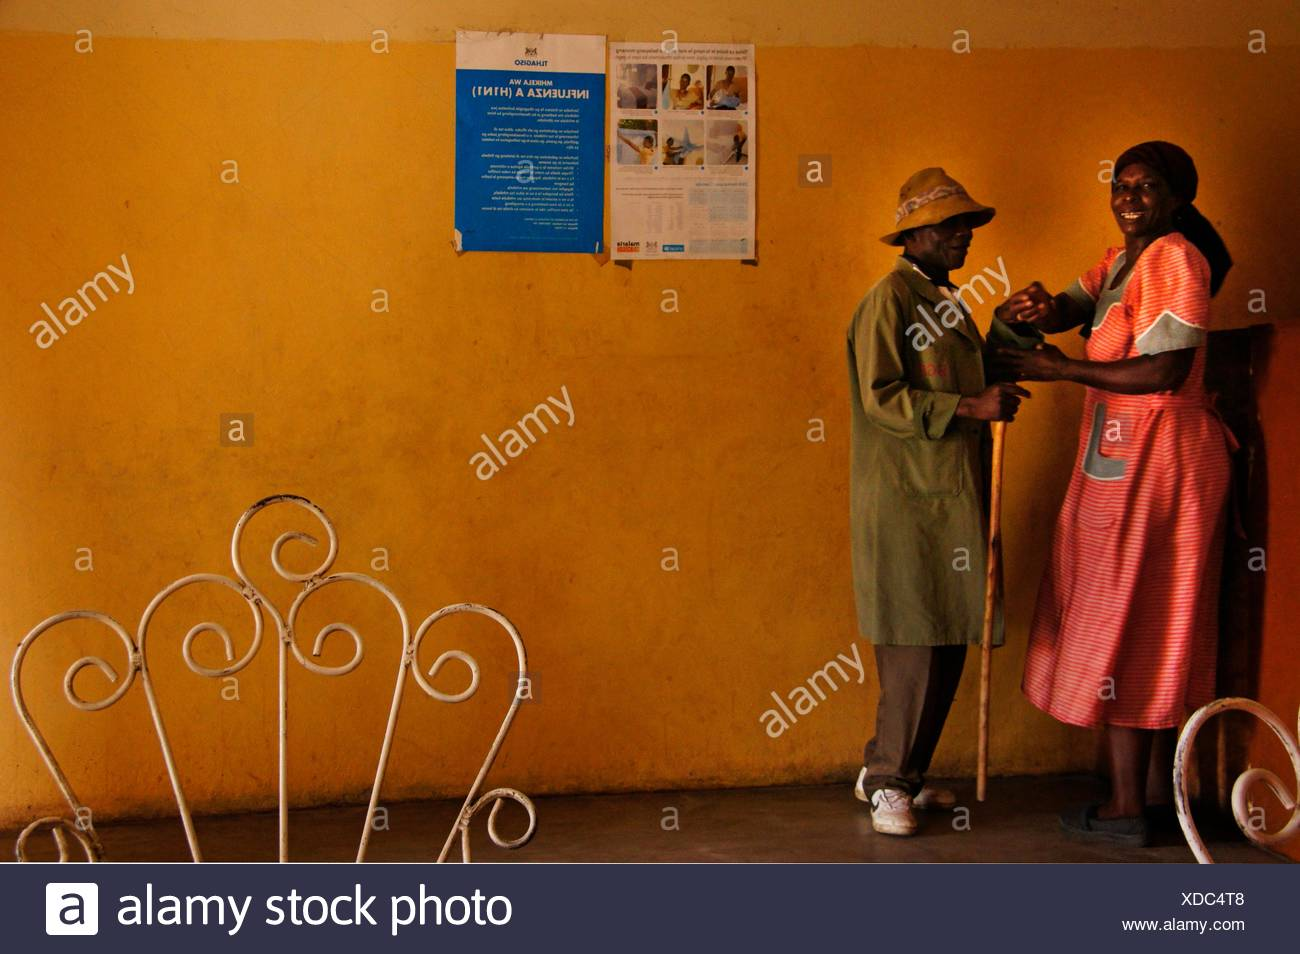 Prevention against Influenza A H1N1 and Africa, Gweta, Botswana - Stock Image